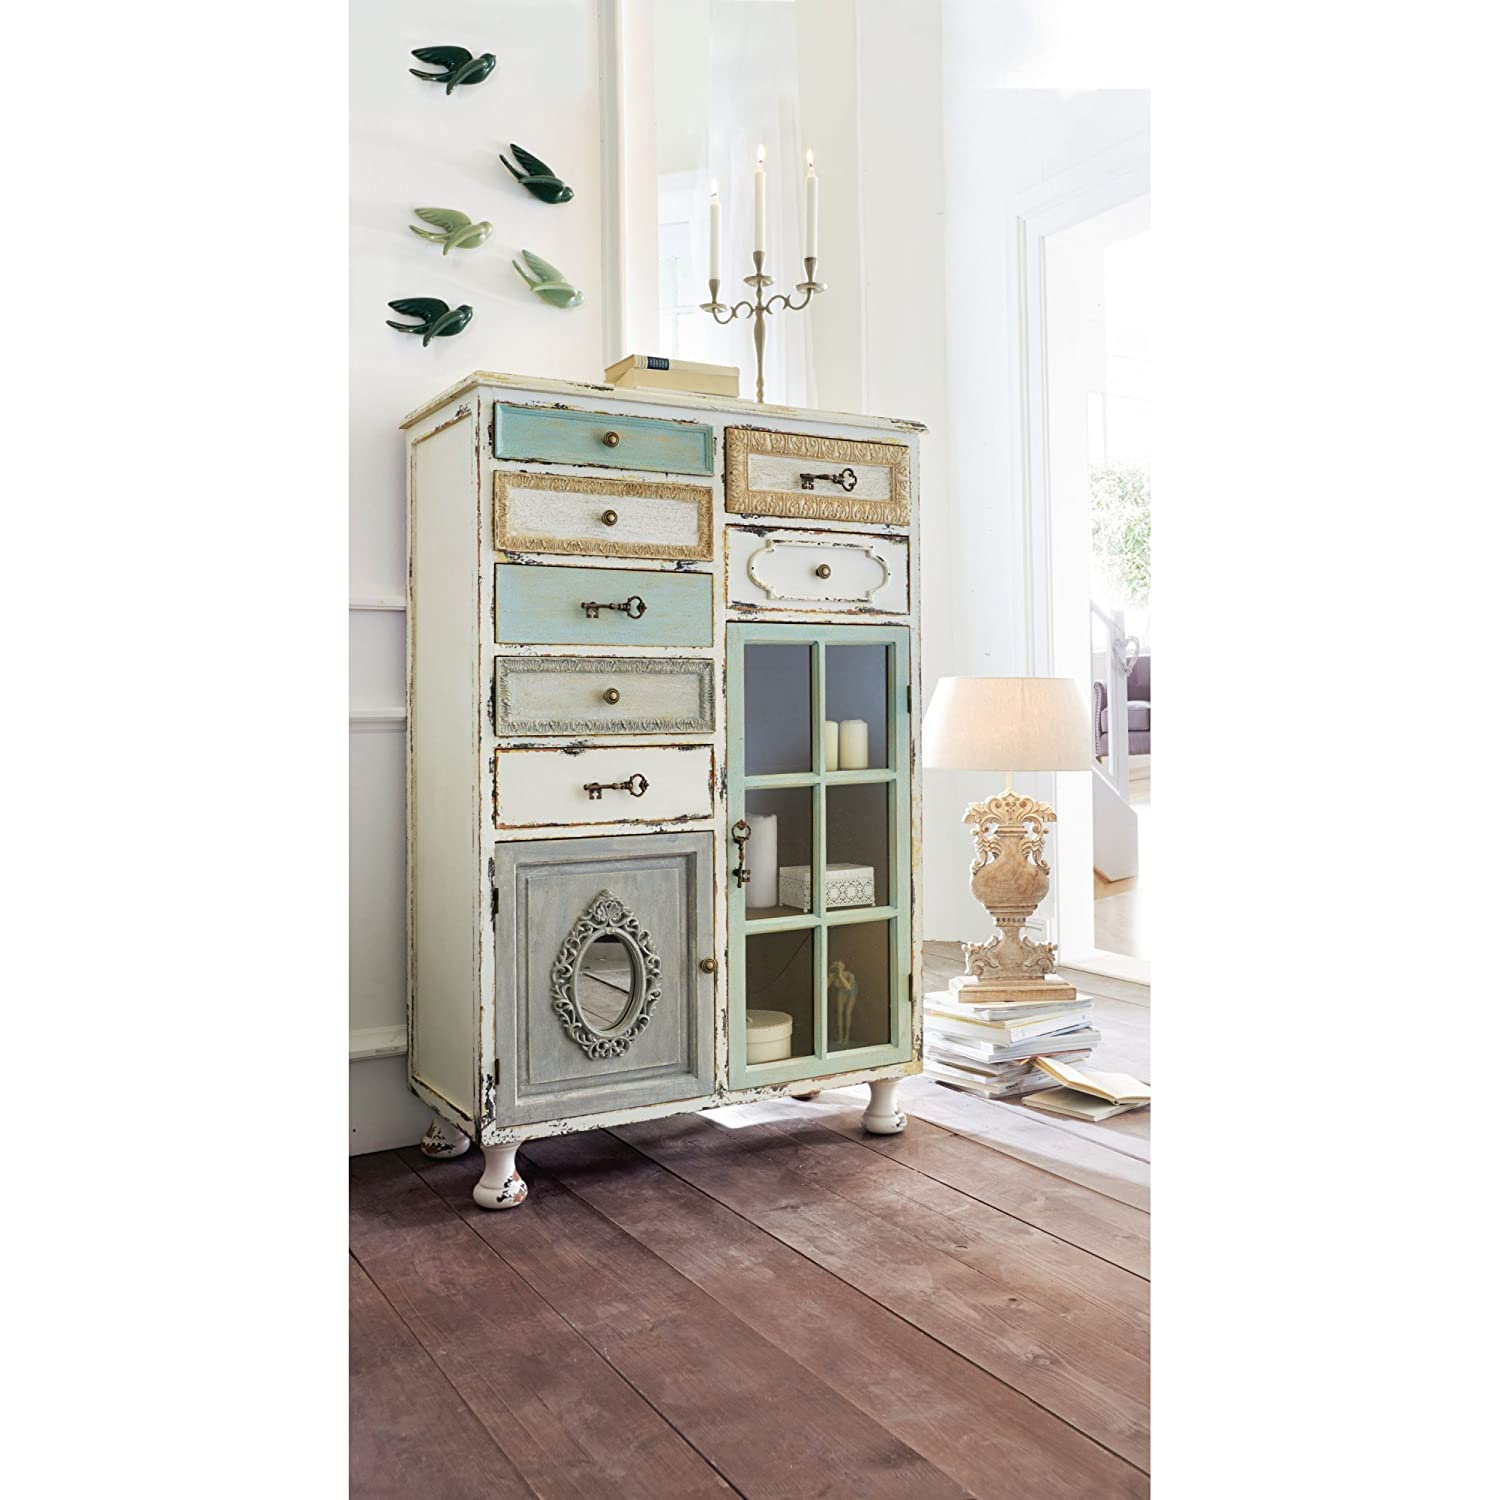 miavilla schrank shabby chic 7 schubladen glast r vintage. Black Bedroom Furniture Sets. Home Design Ideas